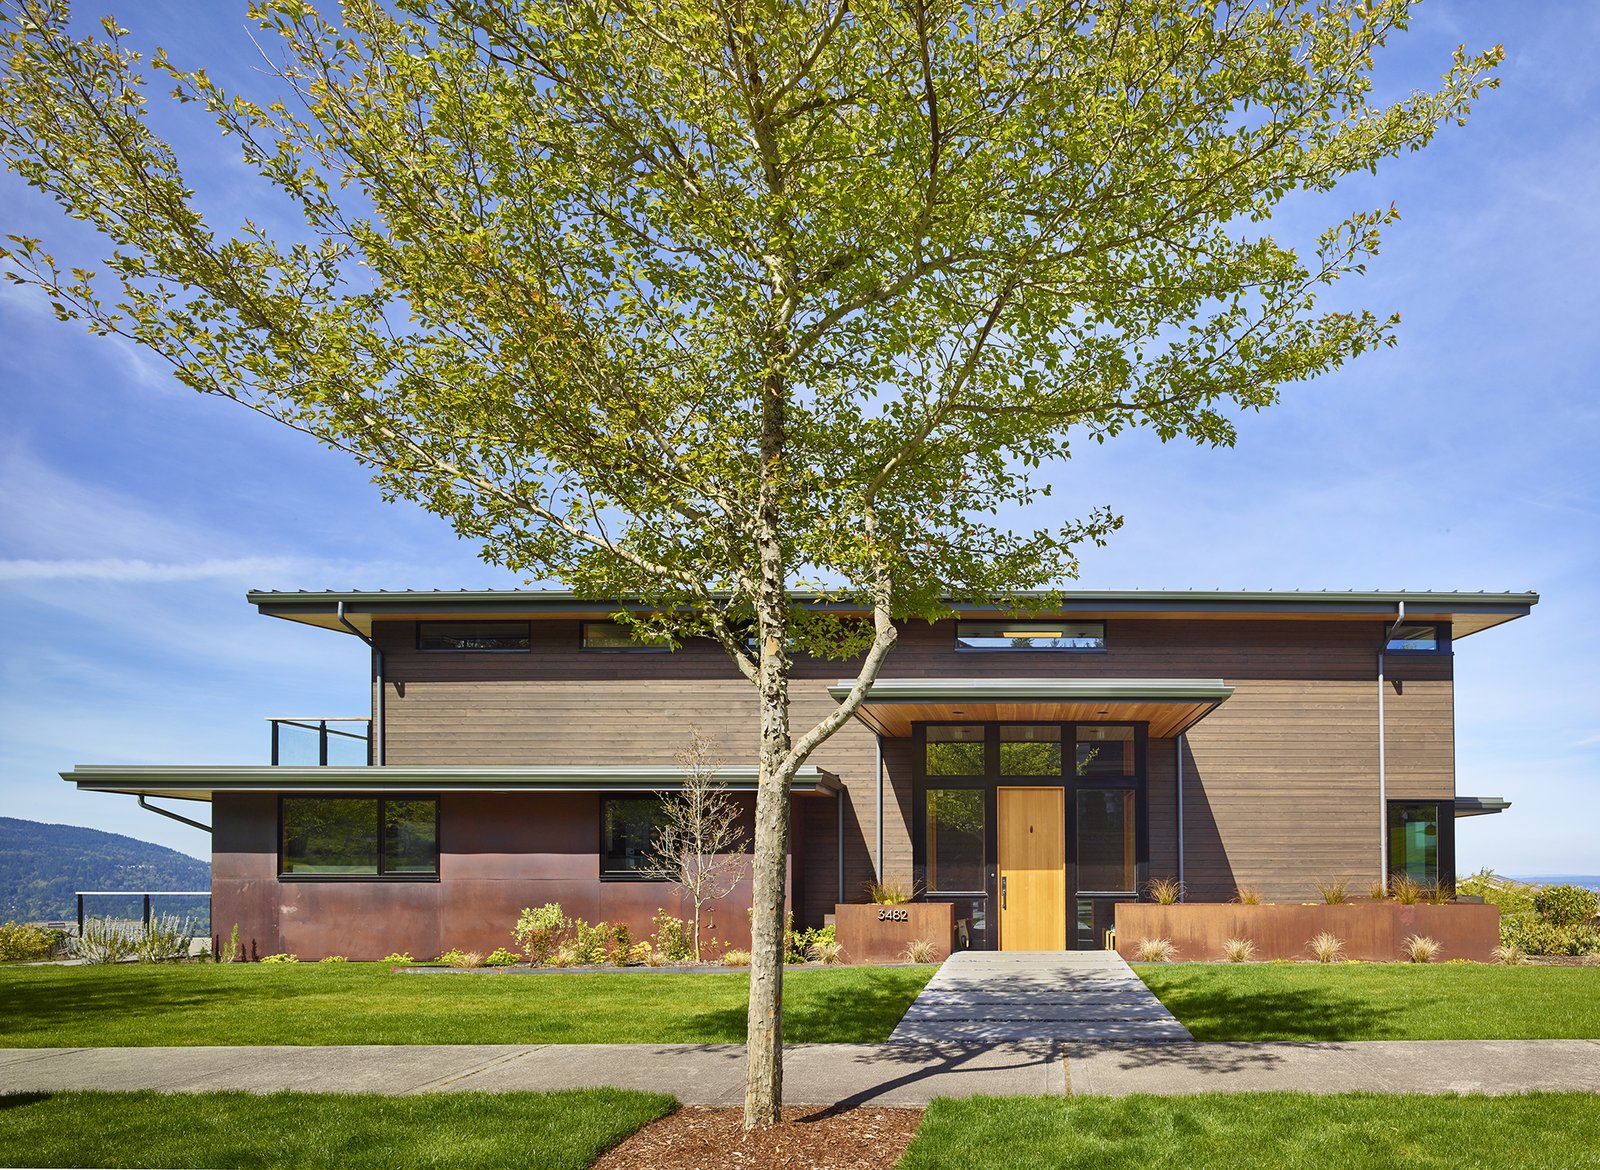 Issaquah Highlands Residence by Studio Zerbey Architecture & Design